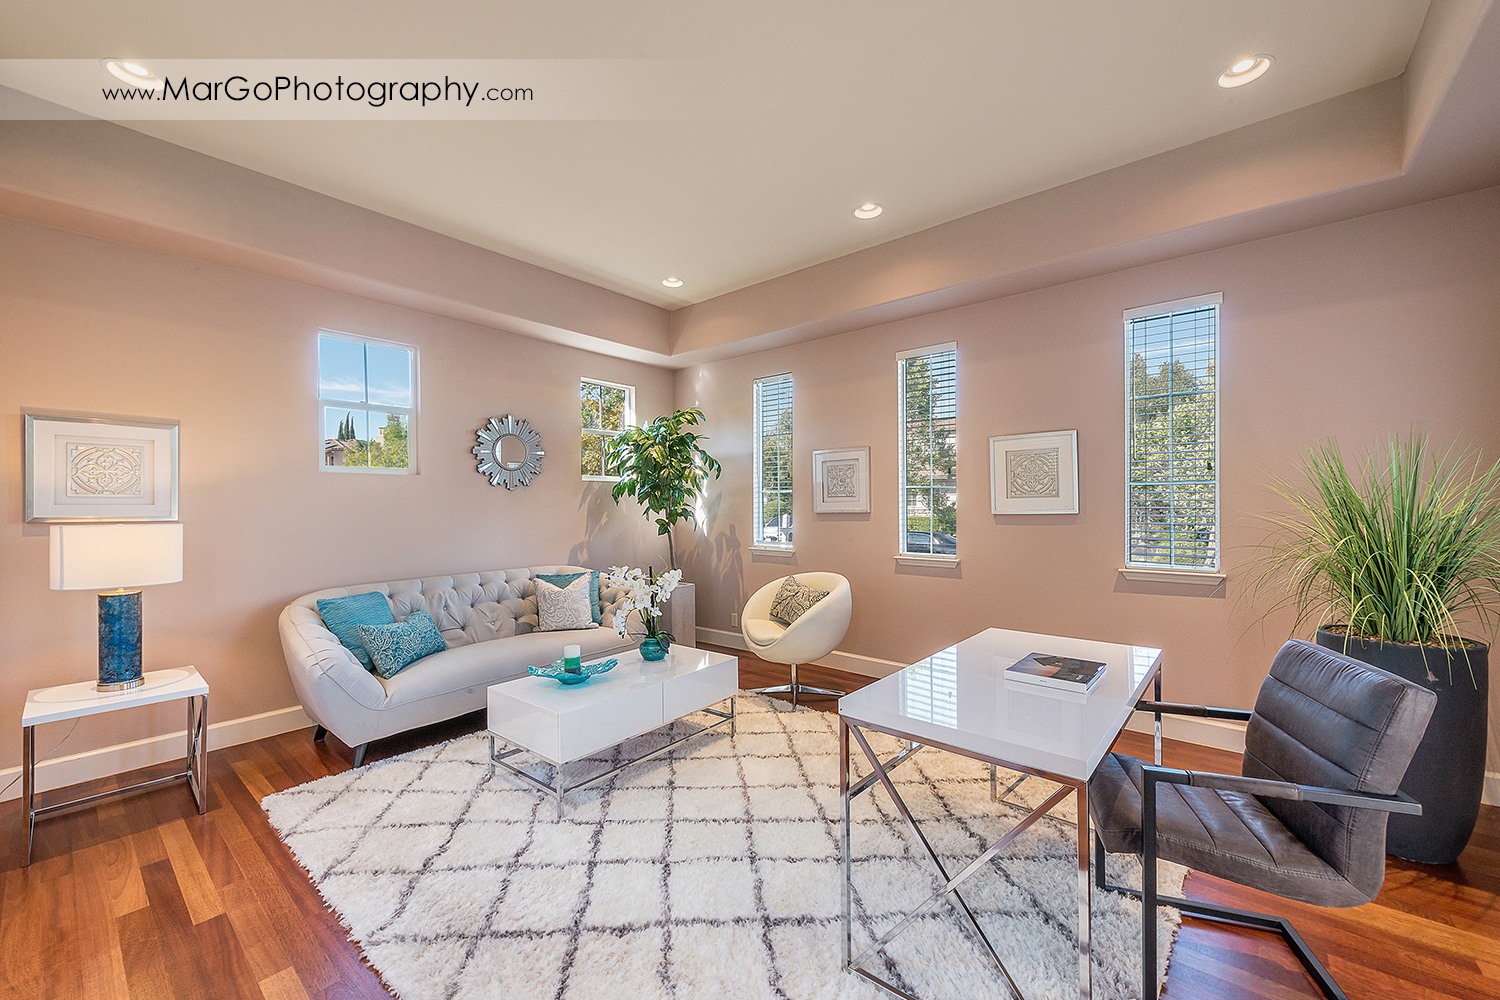 office / guest room in San Ramon house - real estate photography